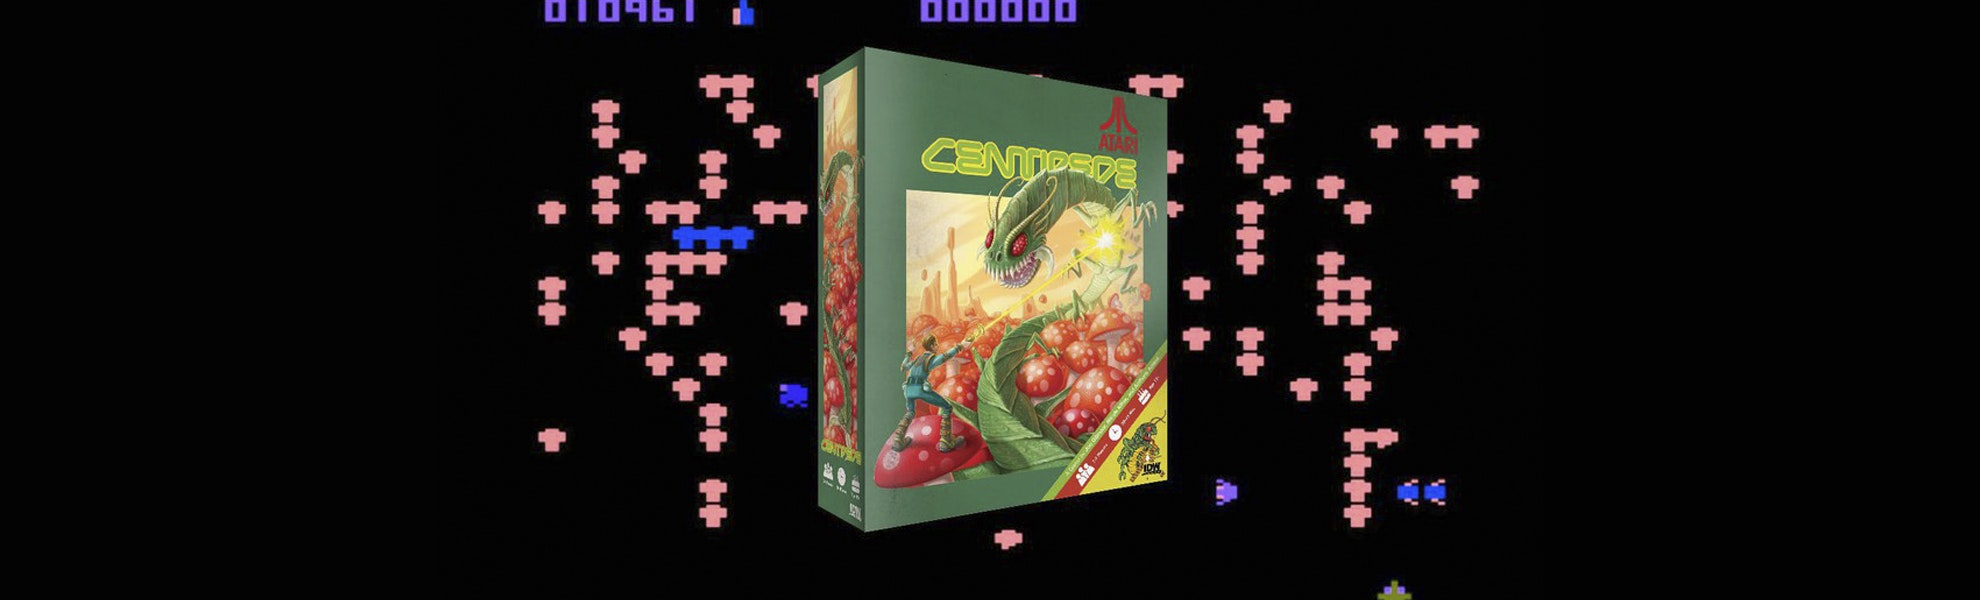 Atari Centipede Board Game